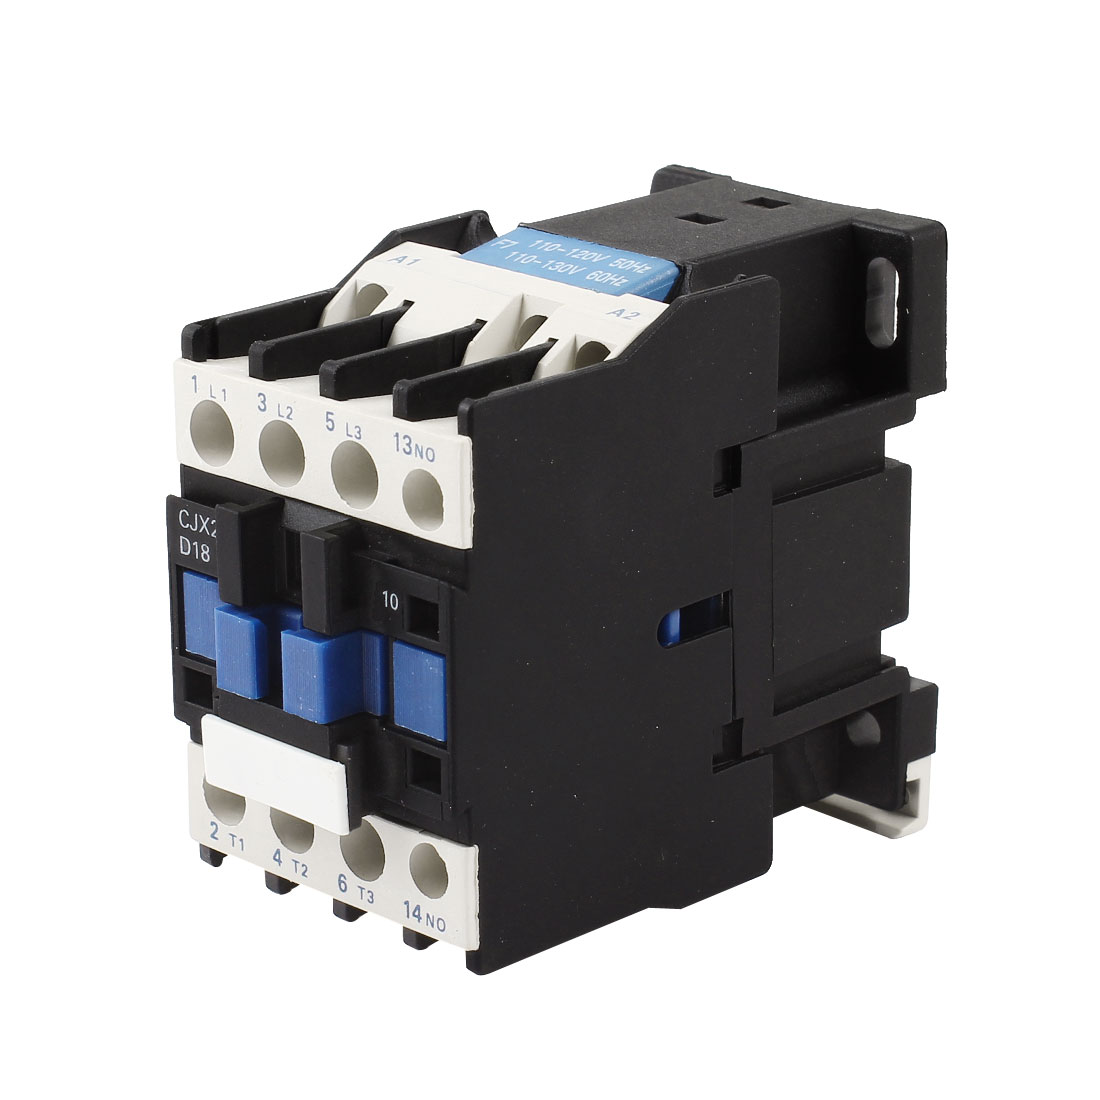 CJX2-1810 AC 110V Coil 35mm DIN Rail Mounting 13 Screw Terminals 3-Phase Electric Power Contactor